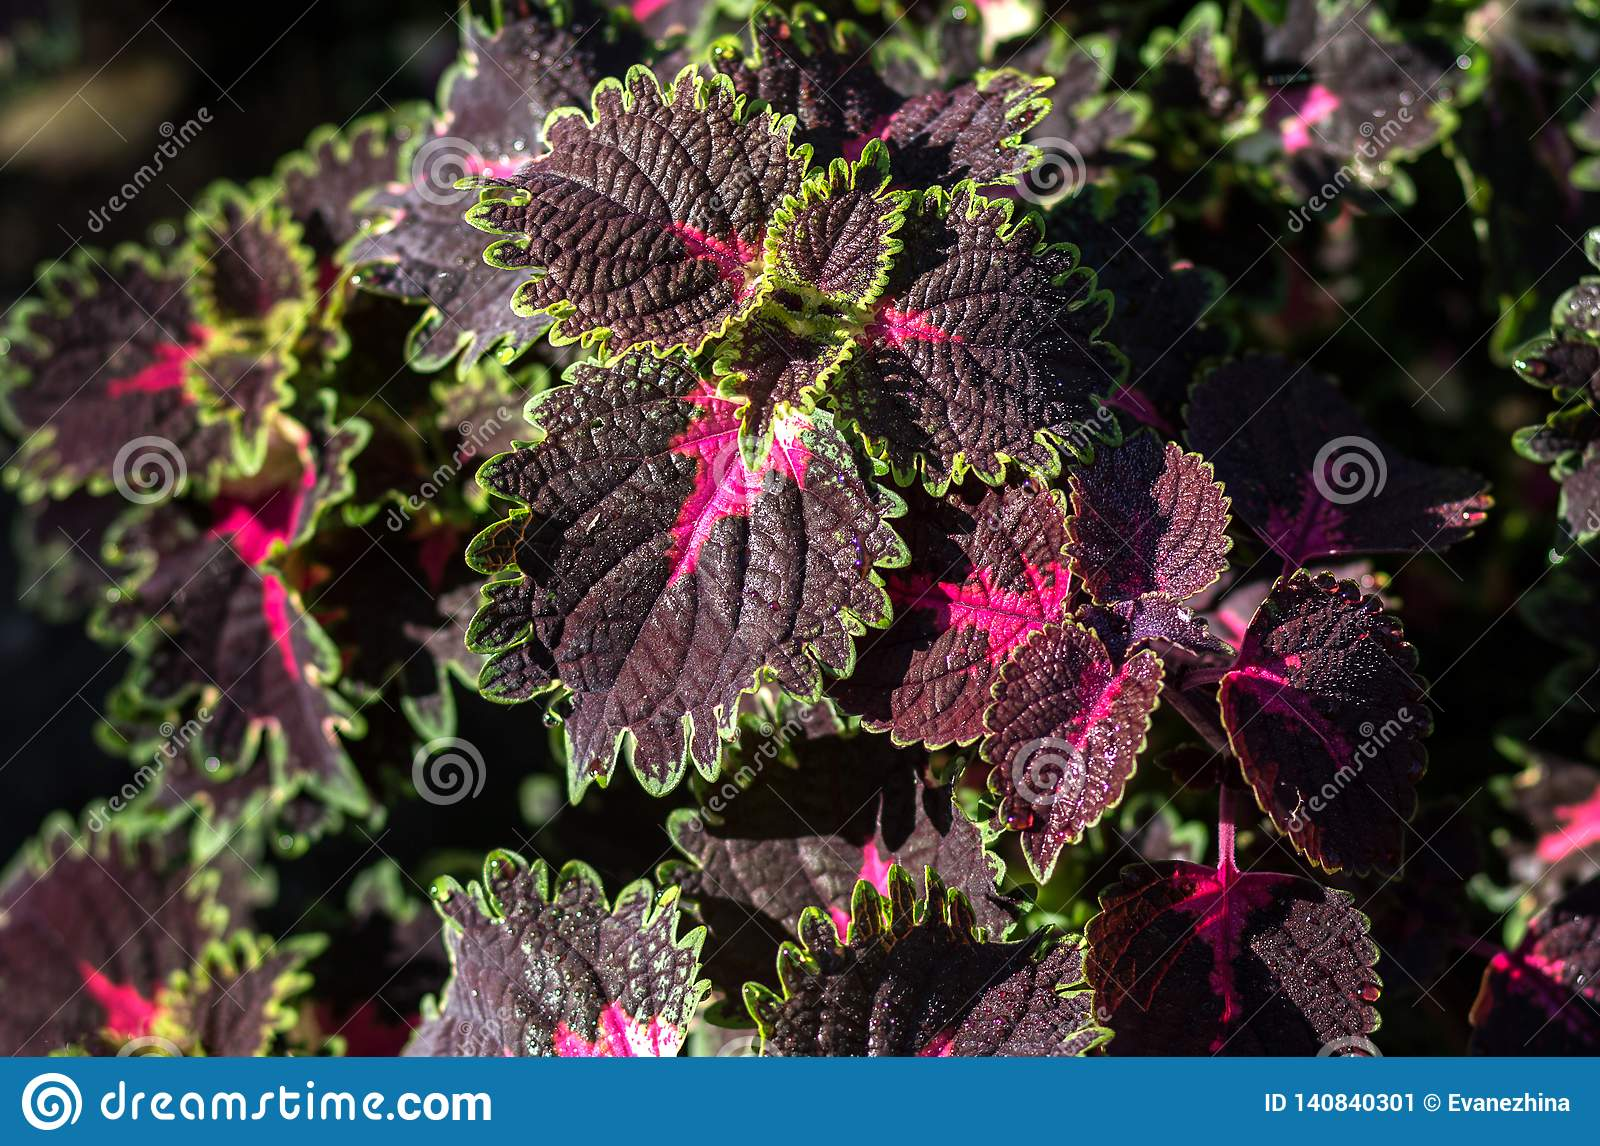 Violet and green leaves of a koleus plant, Plectranthus scutellarioides